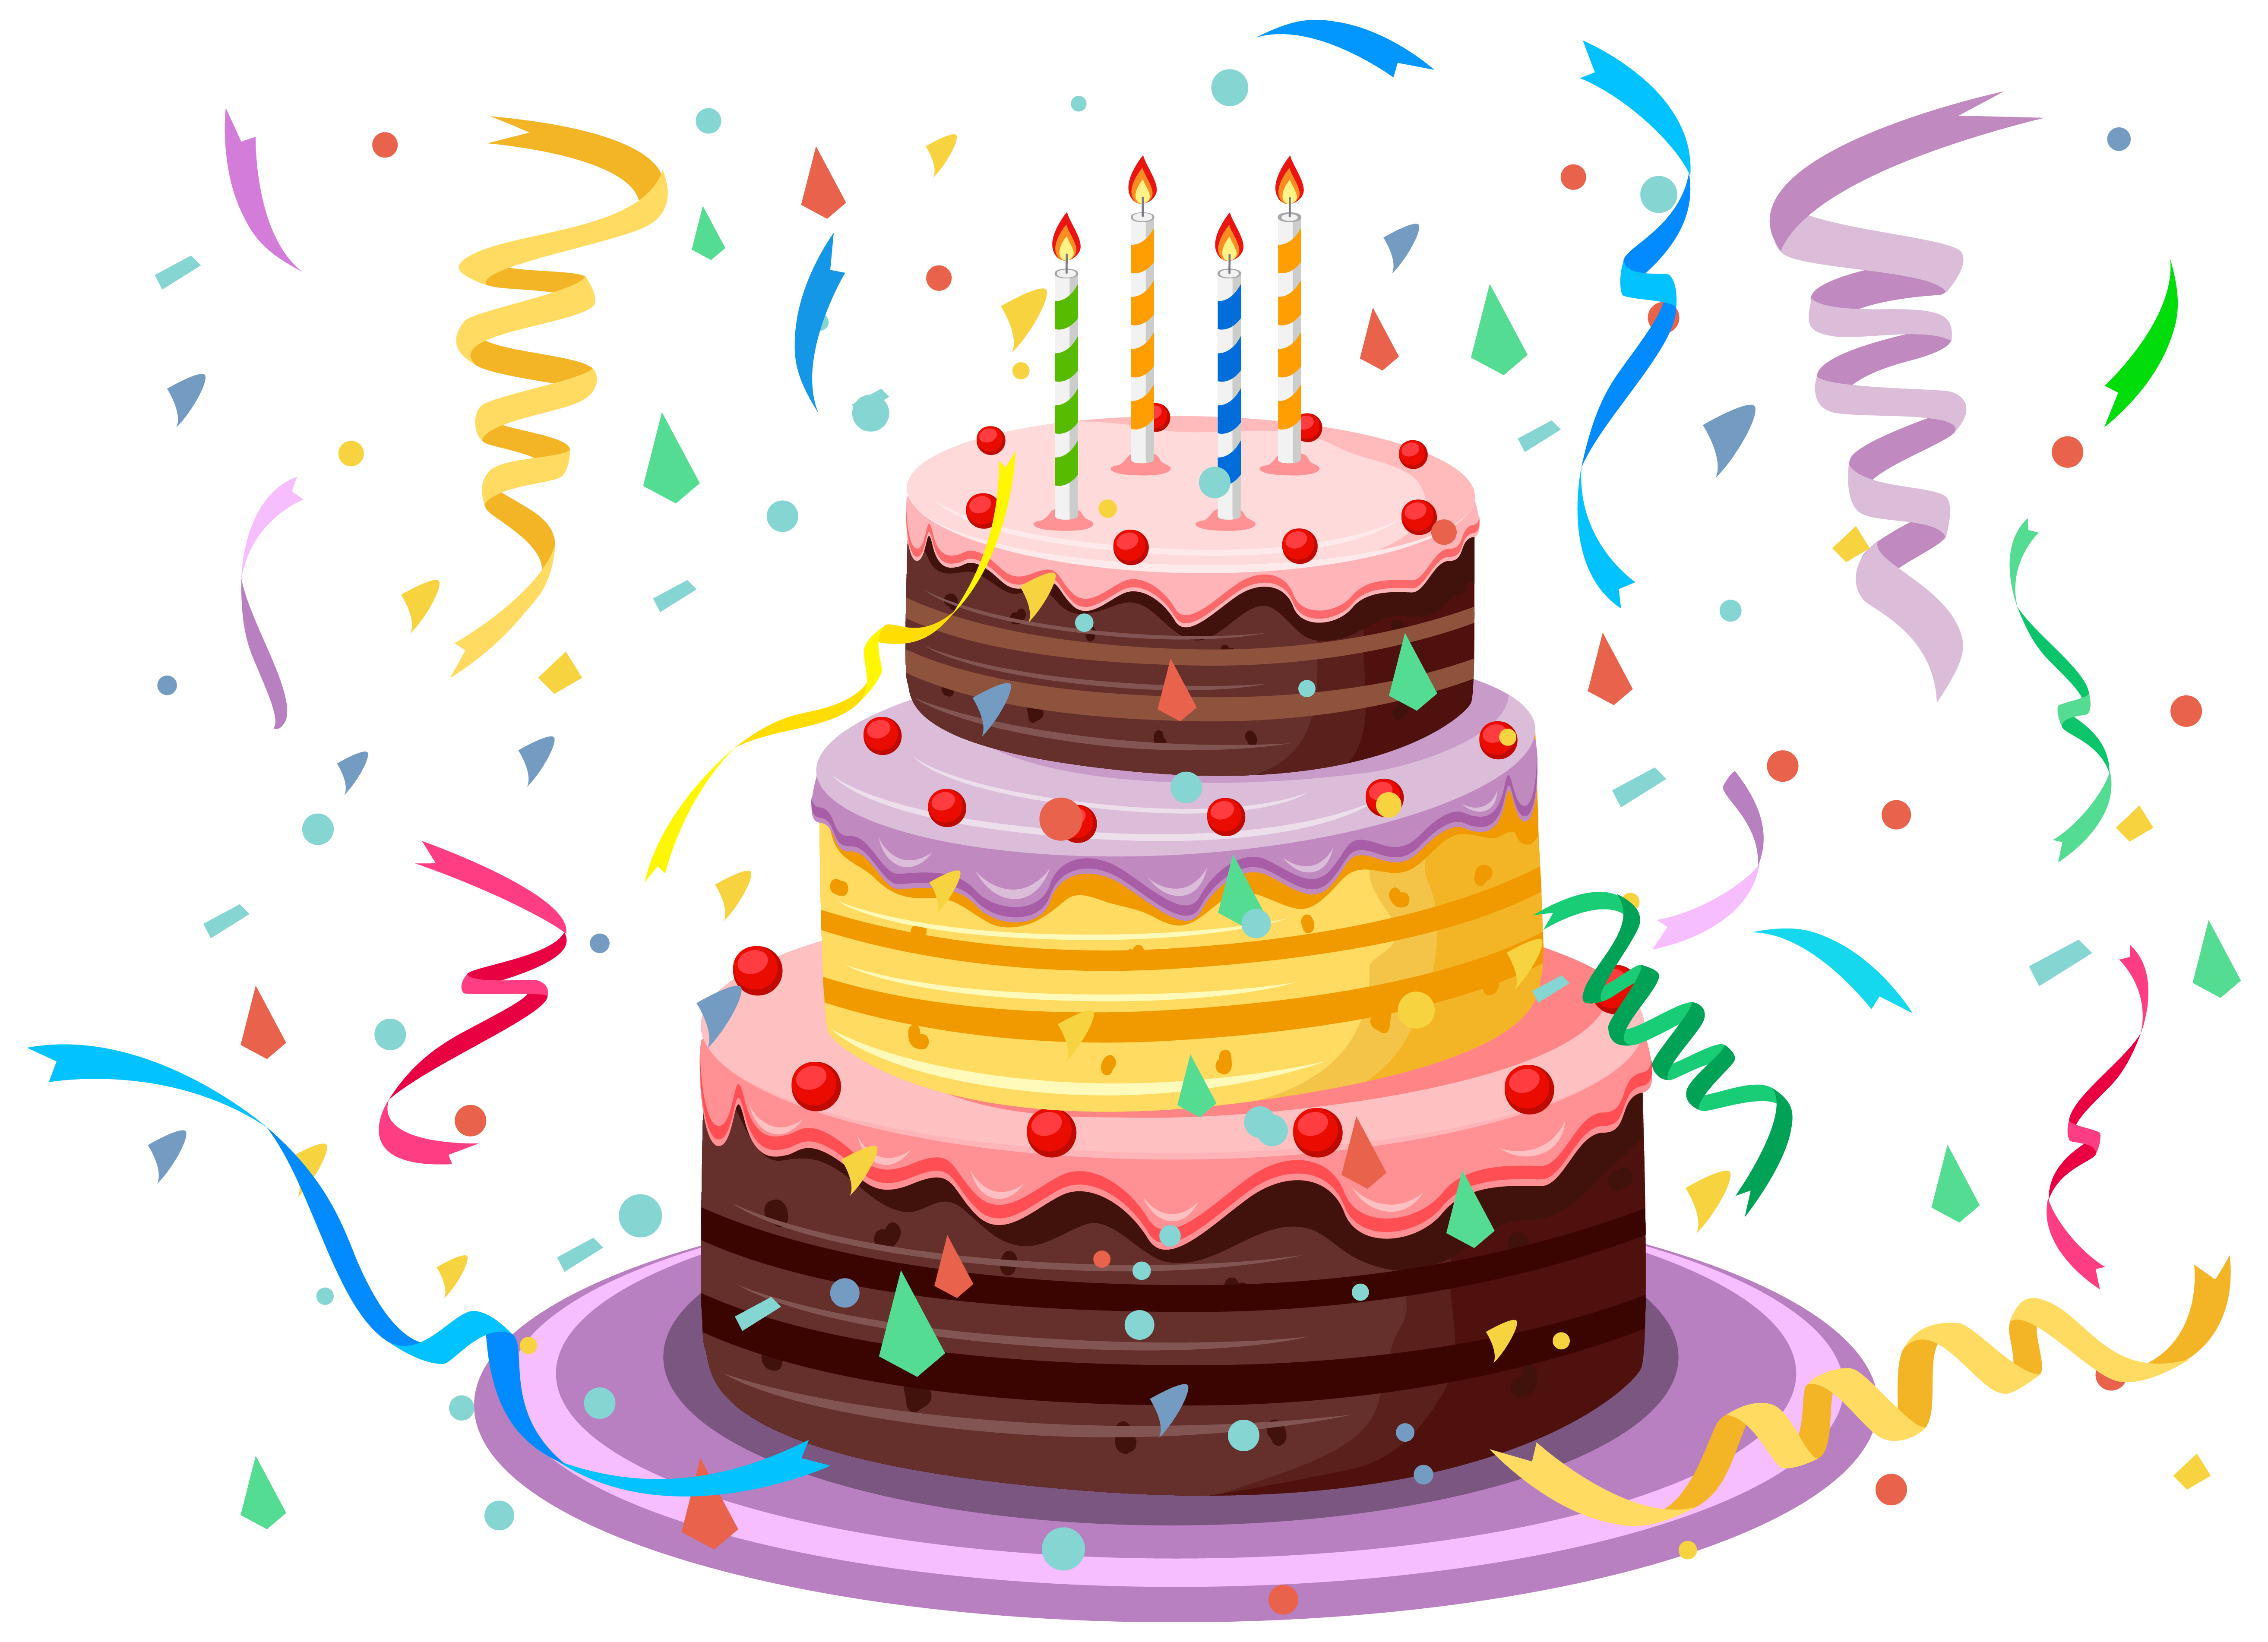 20 Cartoon Cake Png For Free Download On Ya Webdesign